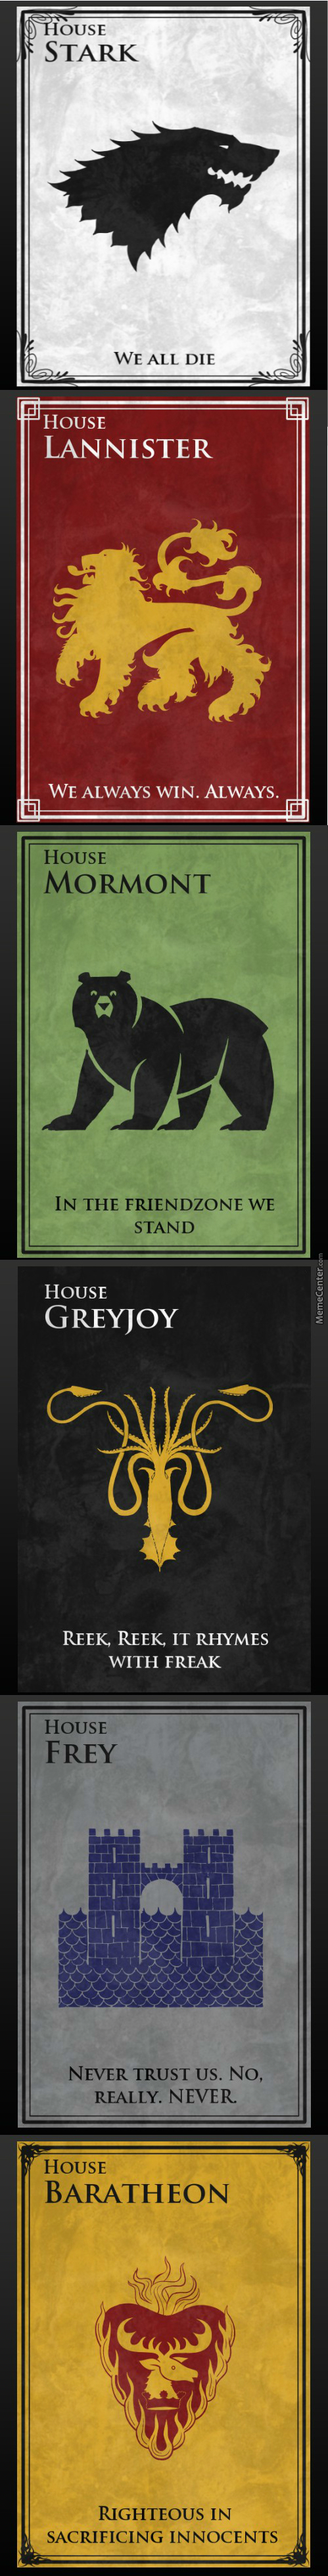 New Game Of Thrones Houses  Mottos